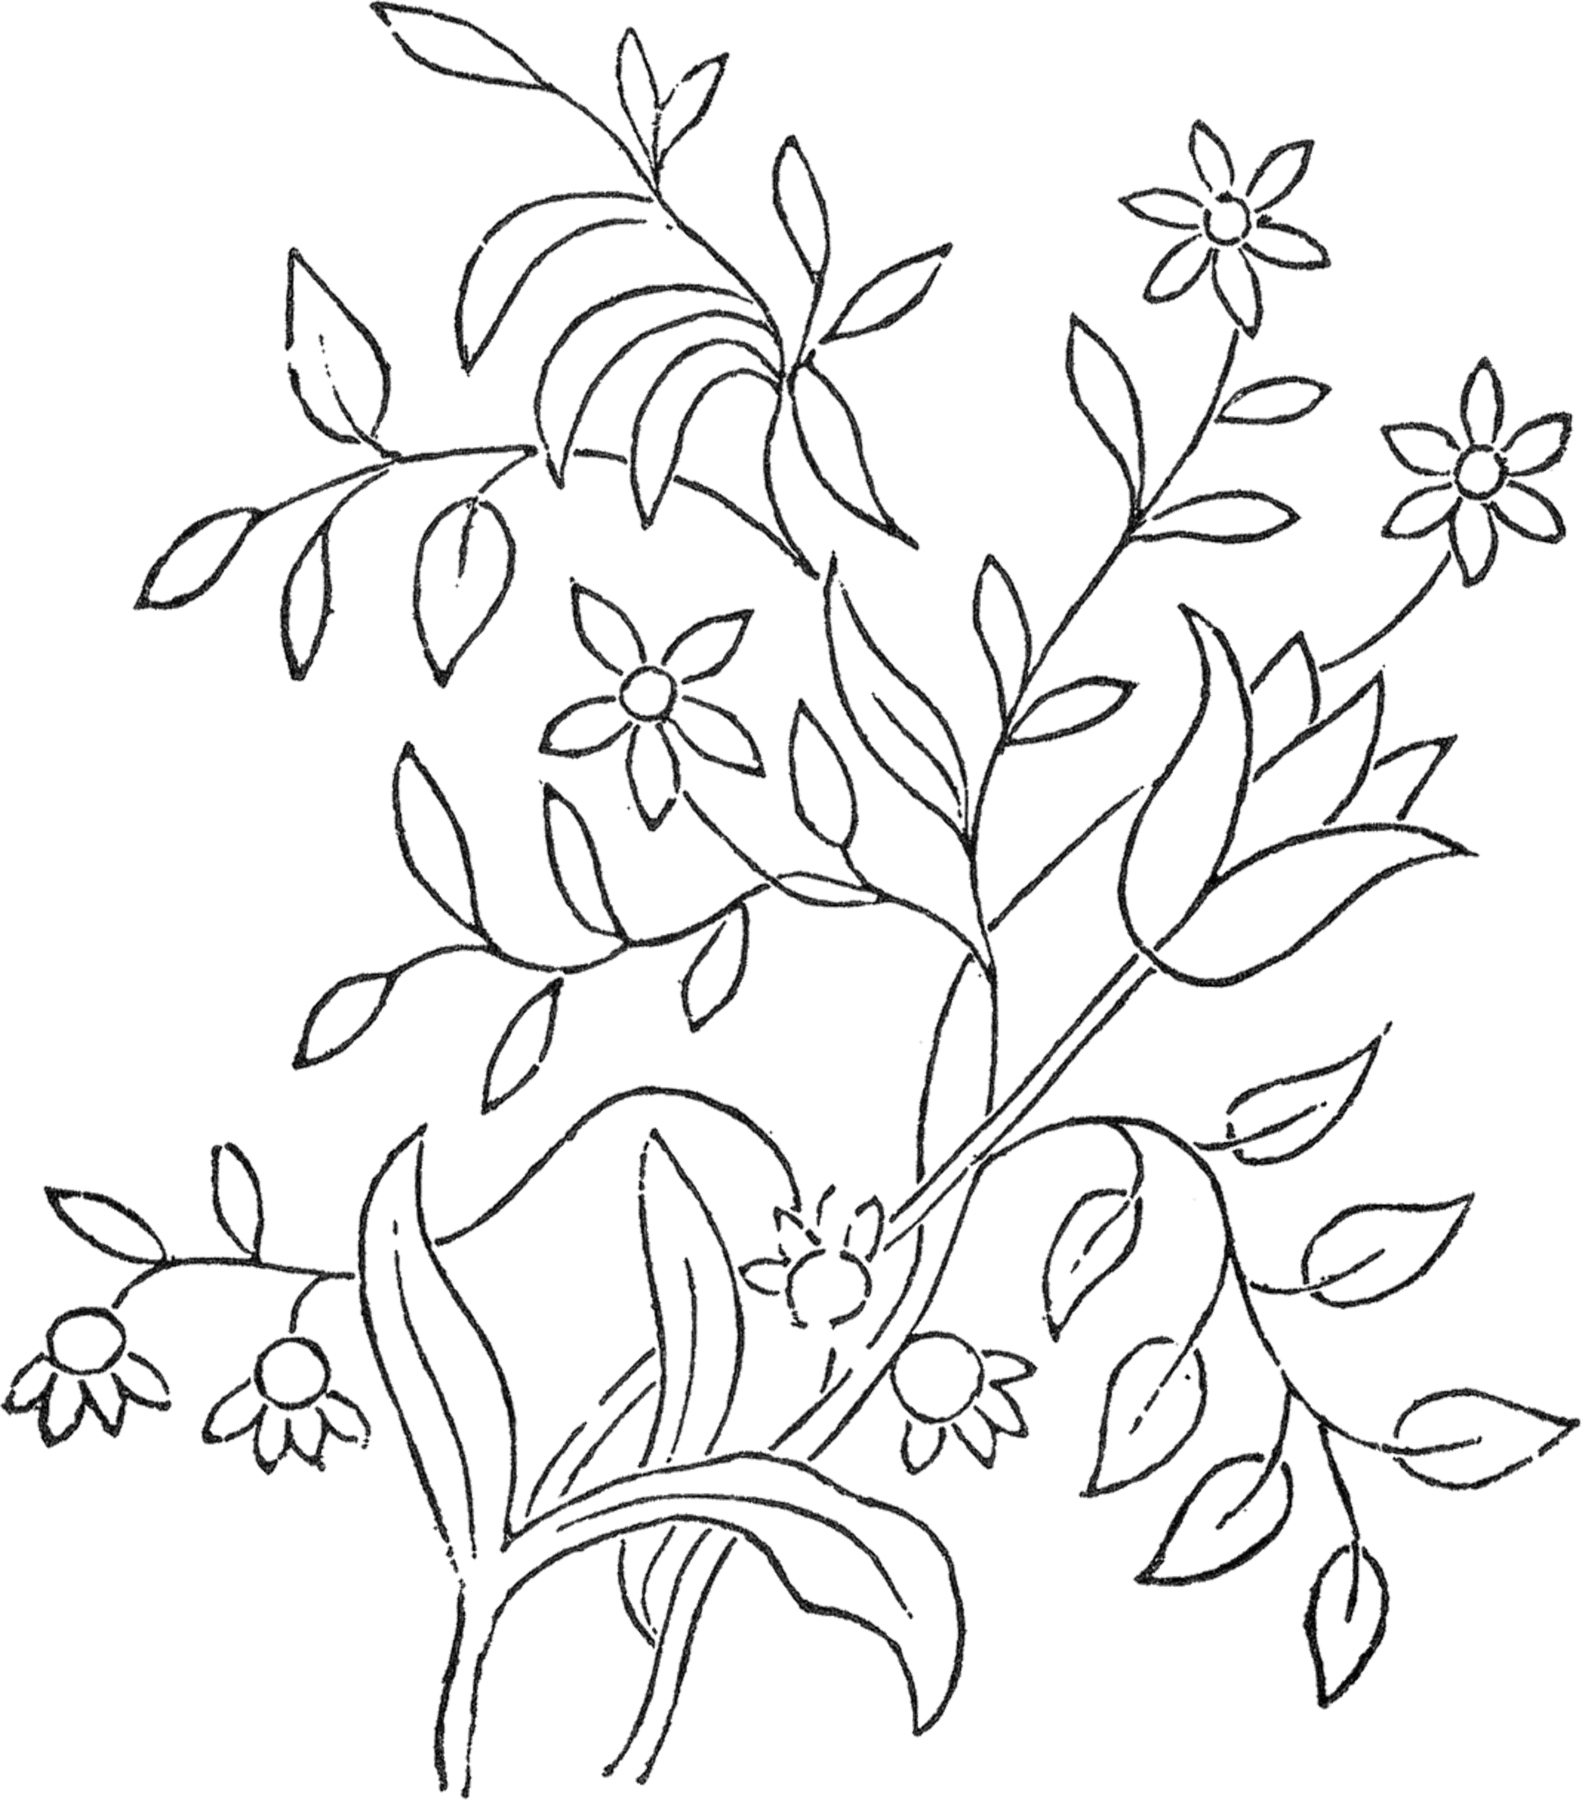 Line Art Embroidery : Flower embroidery pattern the graphics fairy